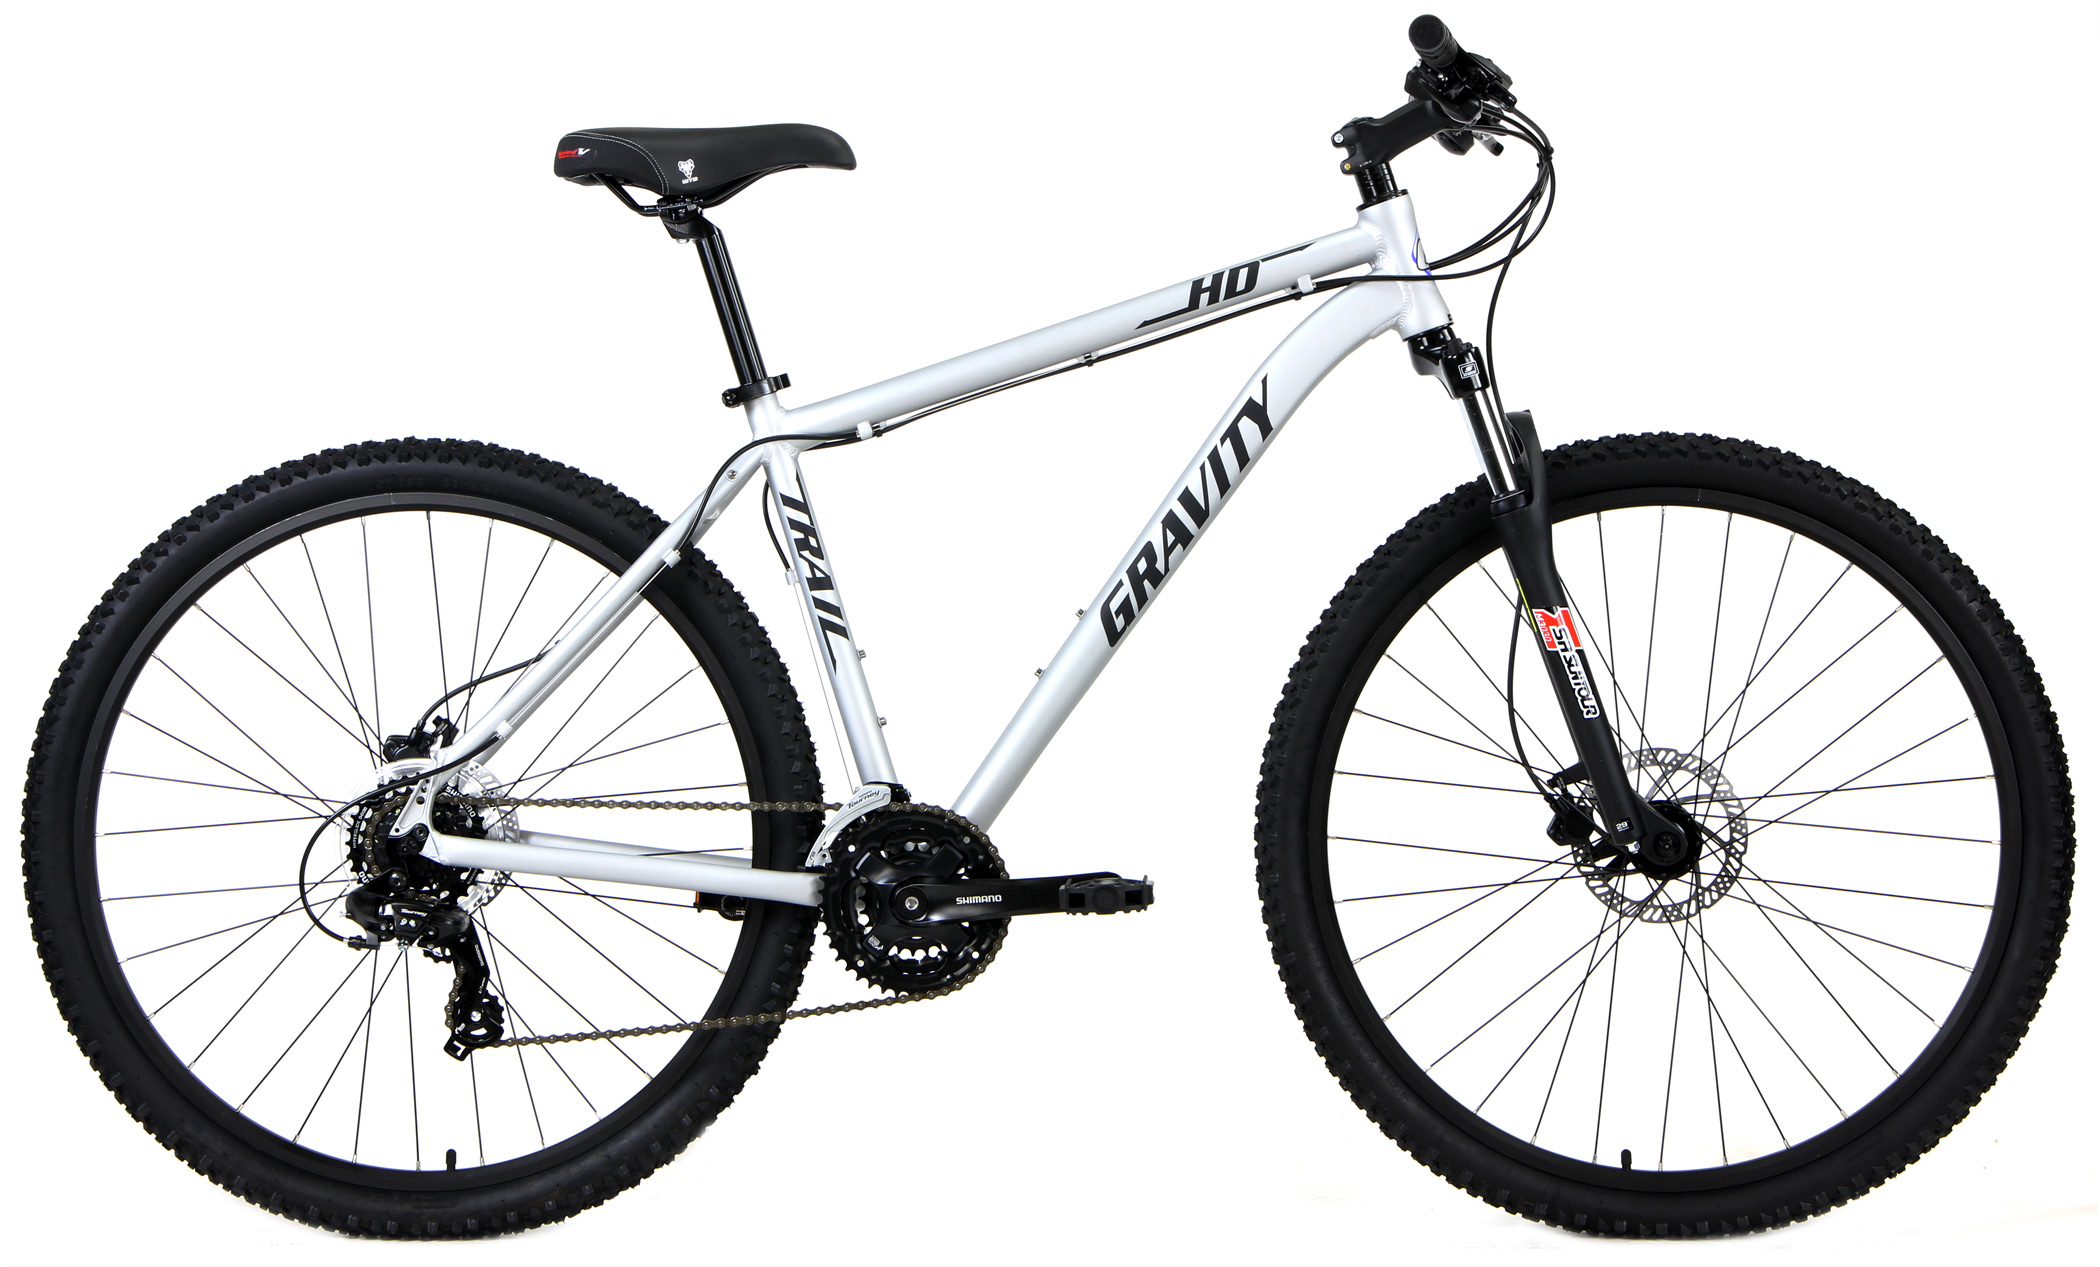 Bikes Gravity HD Trail Long Travel Fork Hydraulic Disc Brakes 27.5 inch Wheels Image